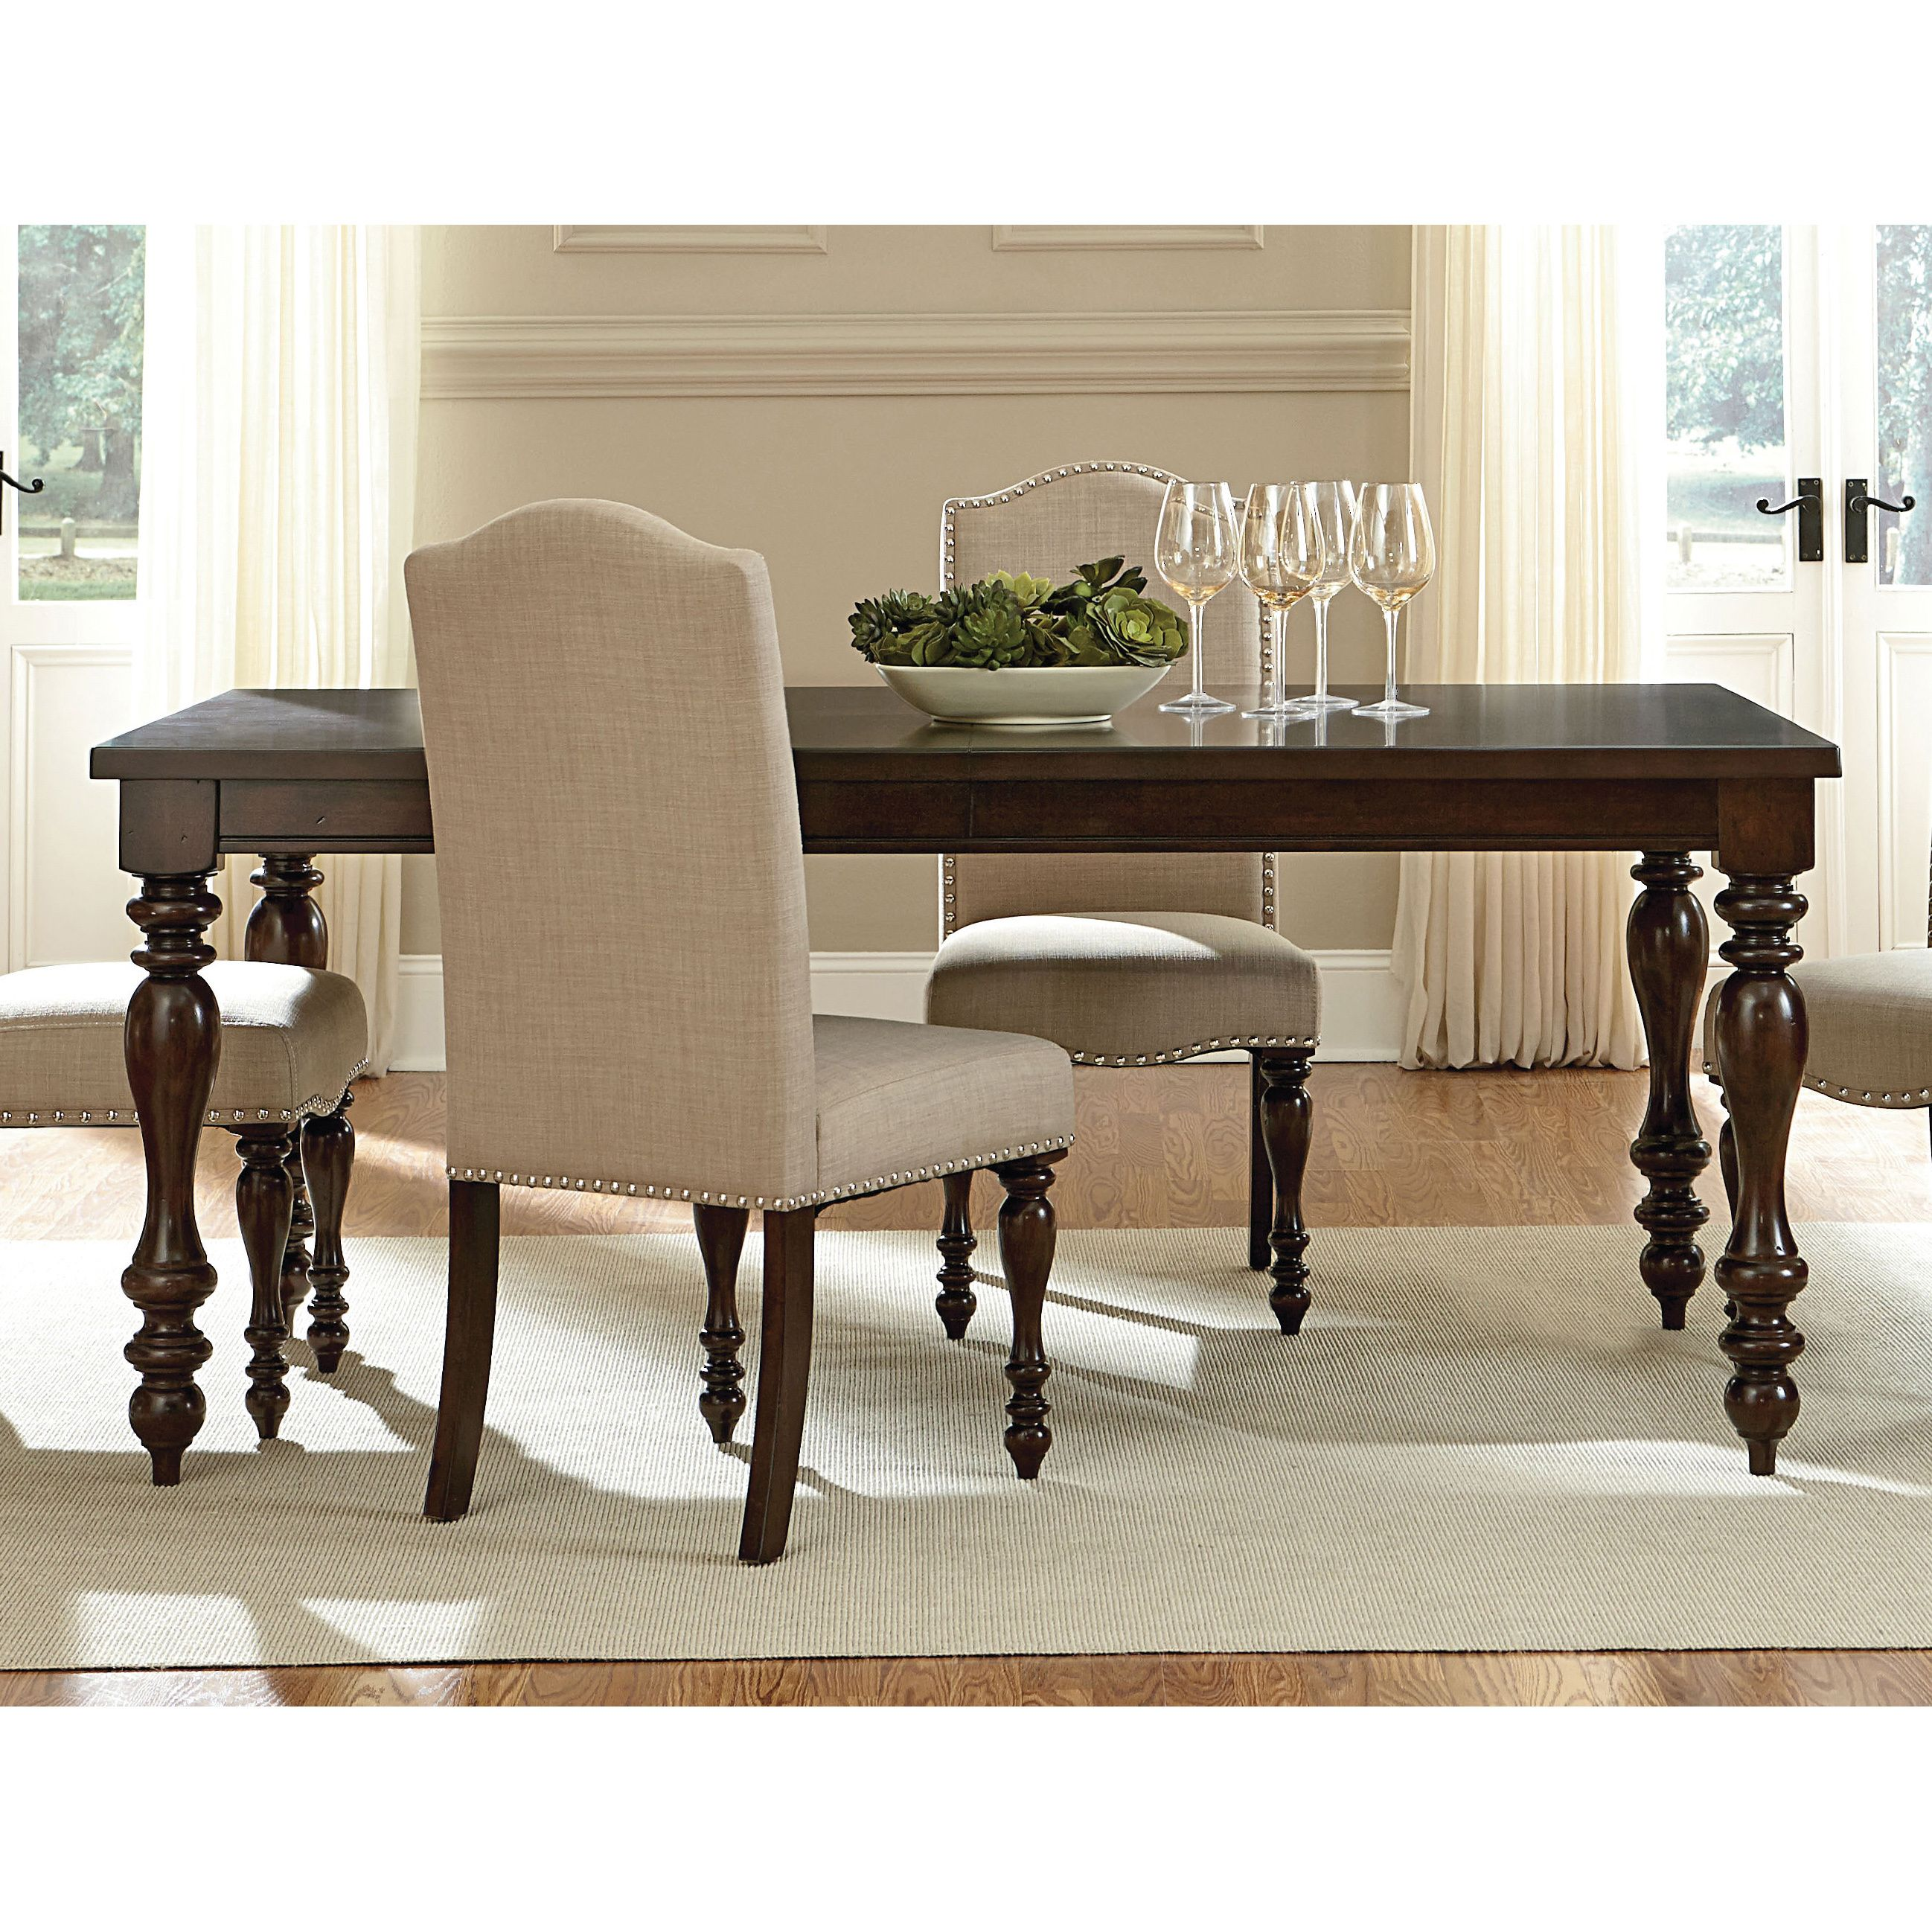 Peachy Art Van Mcgregor Leg Table Dining Room Traditional Pabps2019 Chair Design Images Pabps2019Com